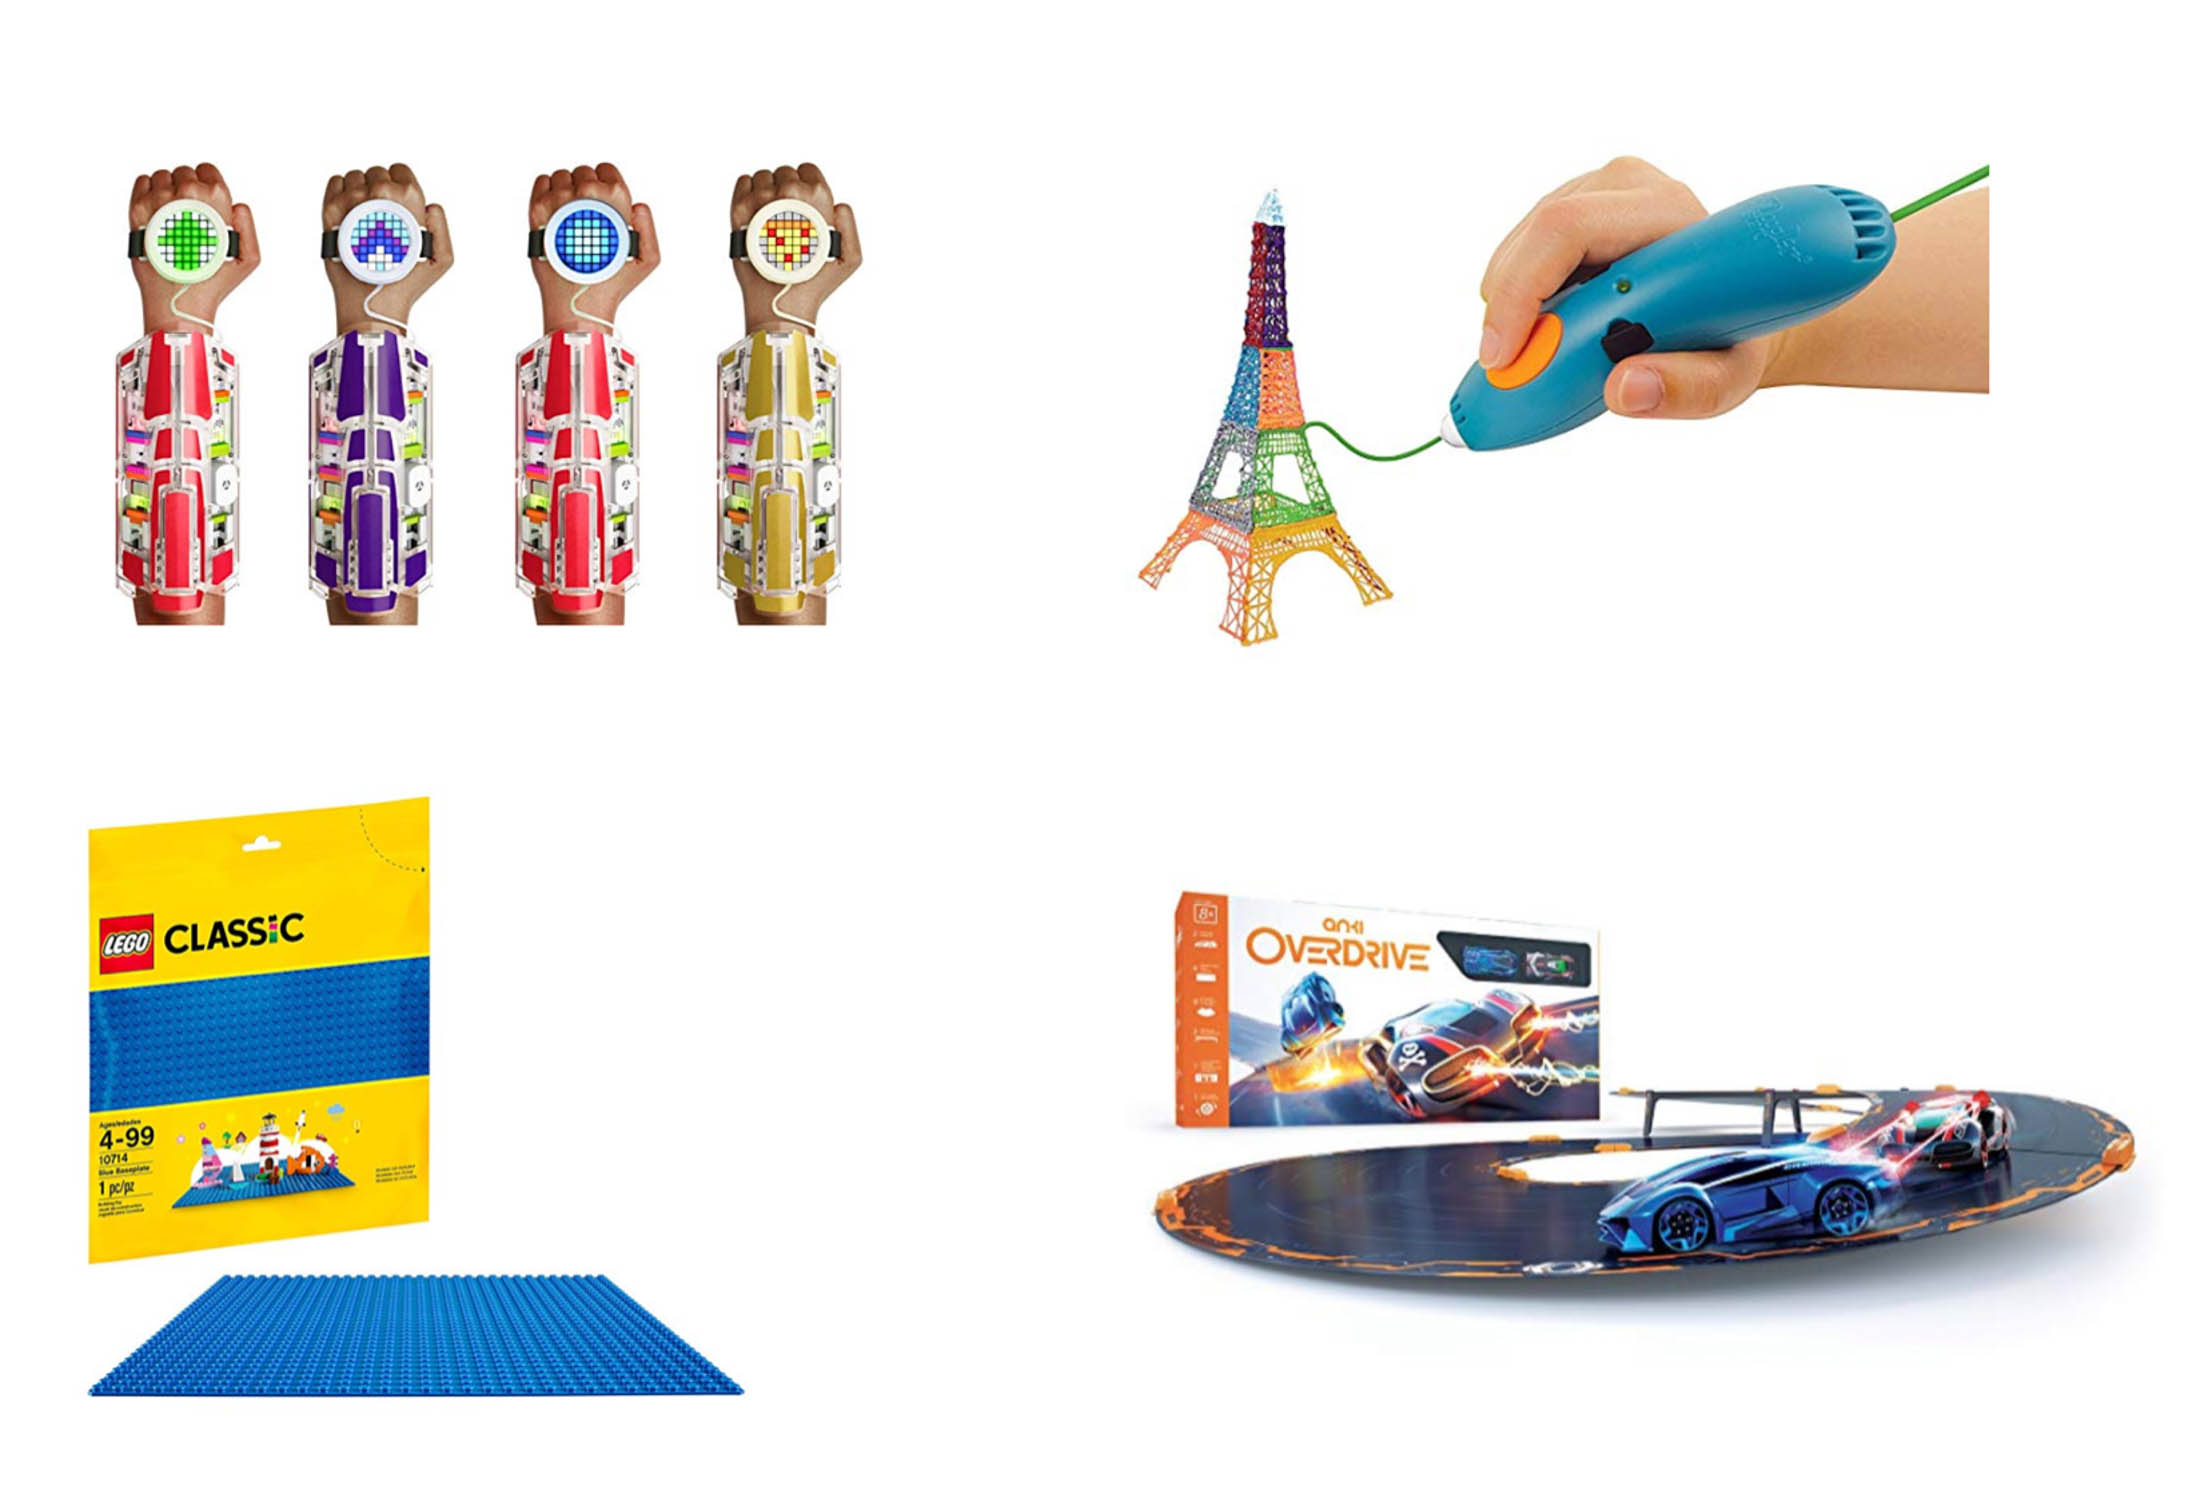 Amazon Black Friday is in full swing! Check out our top picks: favs for home, kids & Amazon Fashion finds...clothing, toys & electronics...all here.